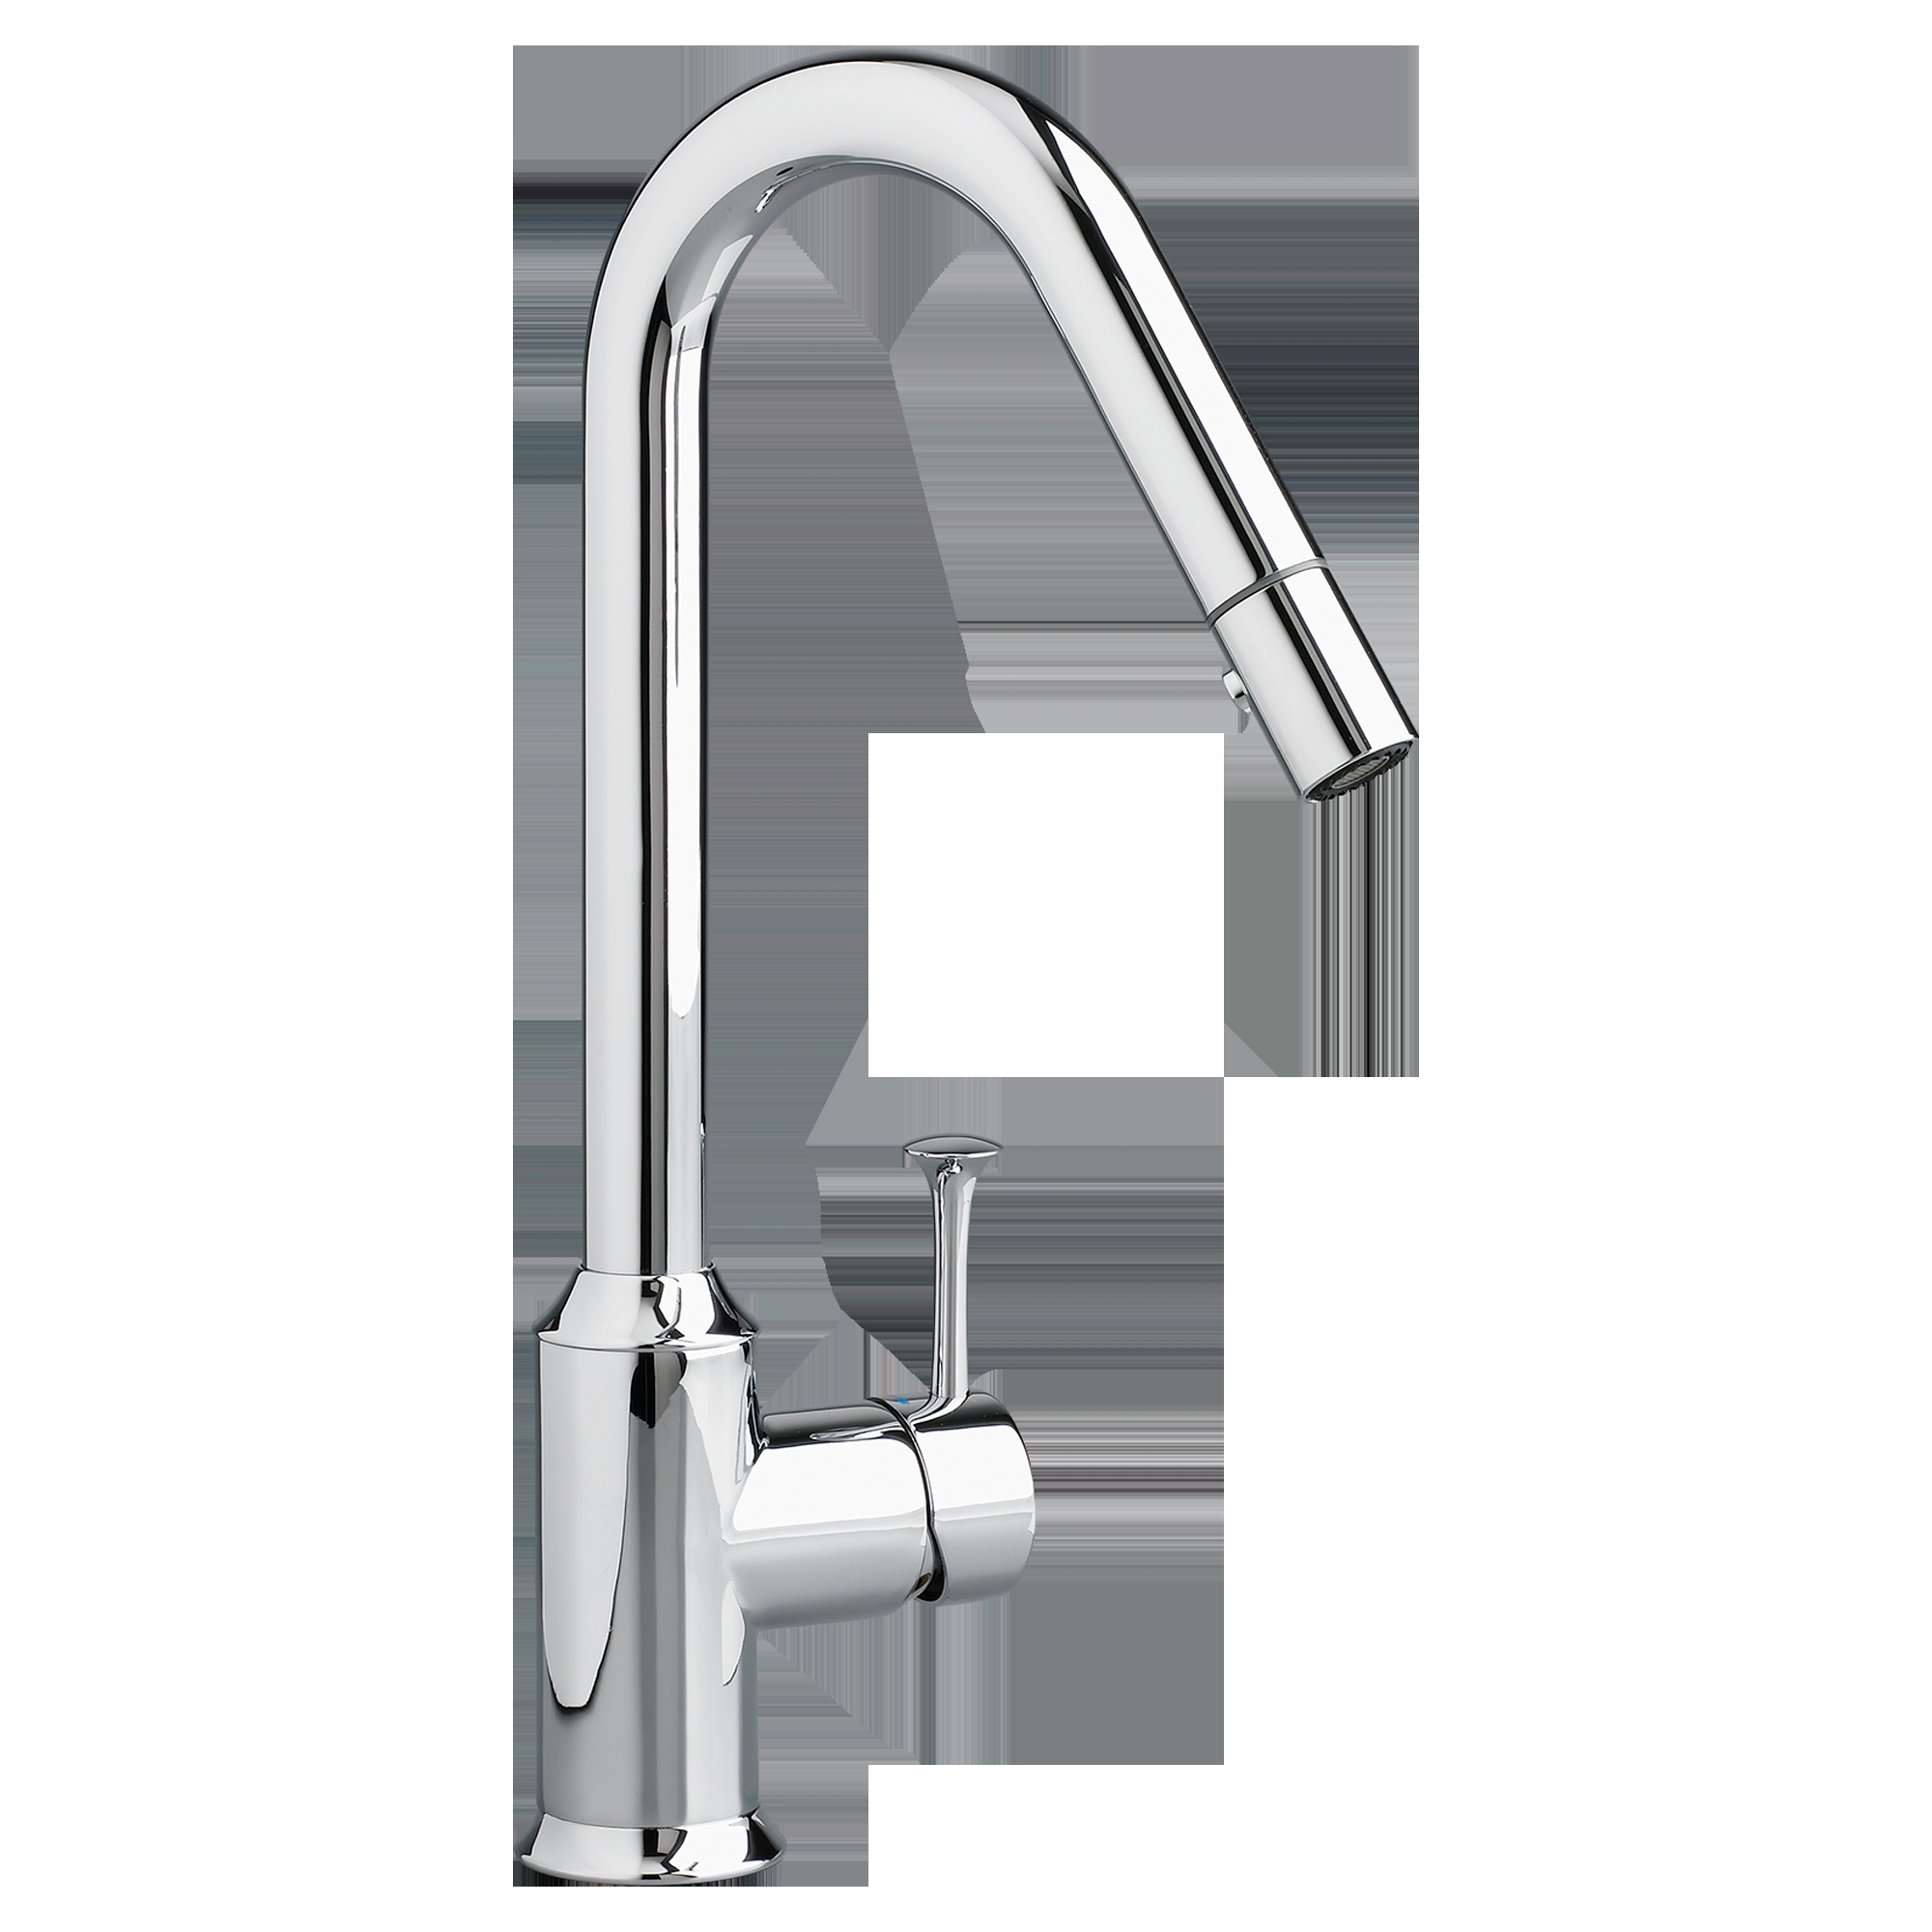 Ideas, pekoe 1 handle pull down high flow kitchen faucet american standard with regard to dimensions 2000 x 2000  .